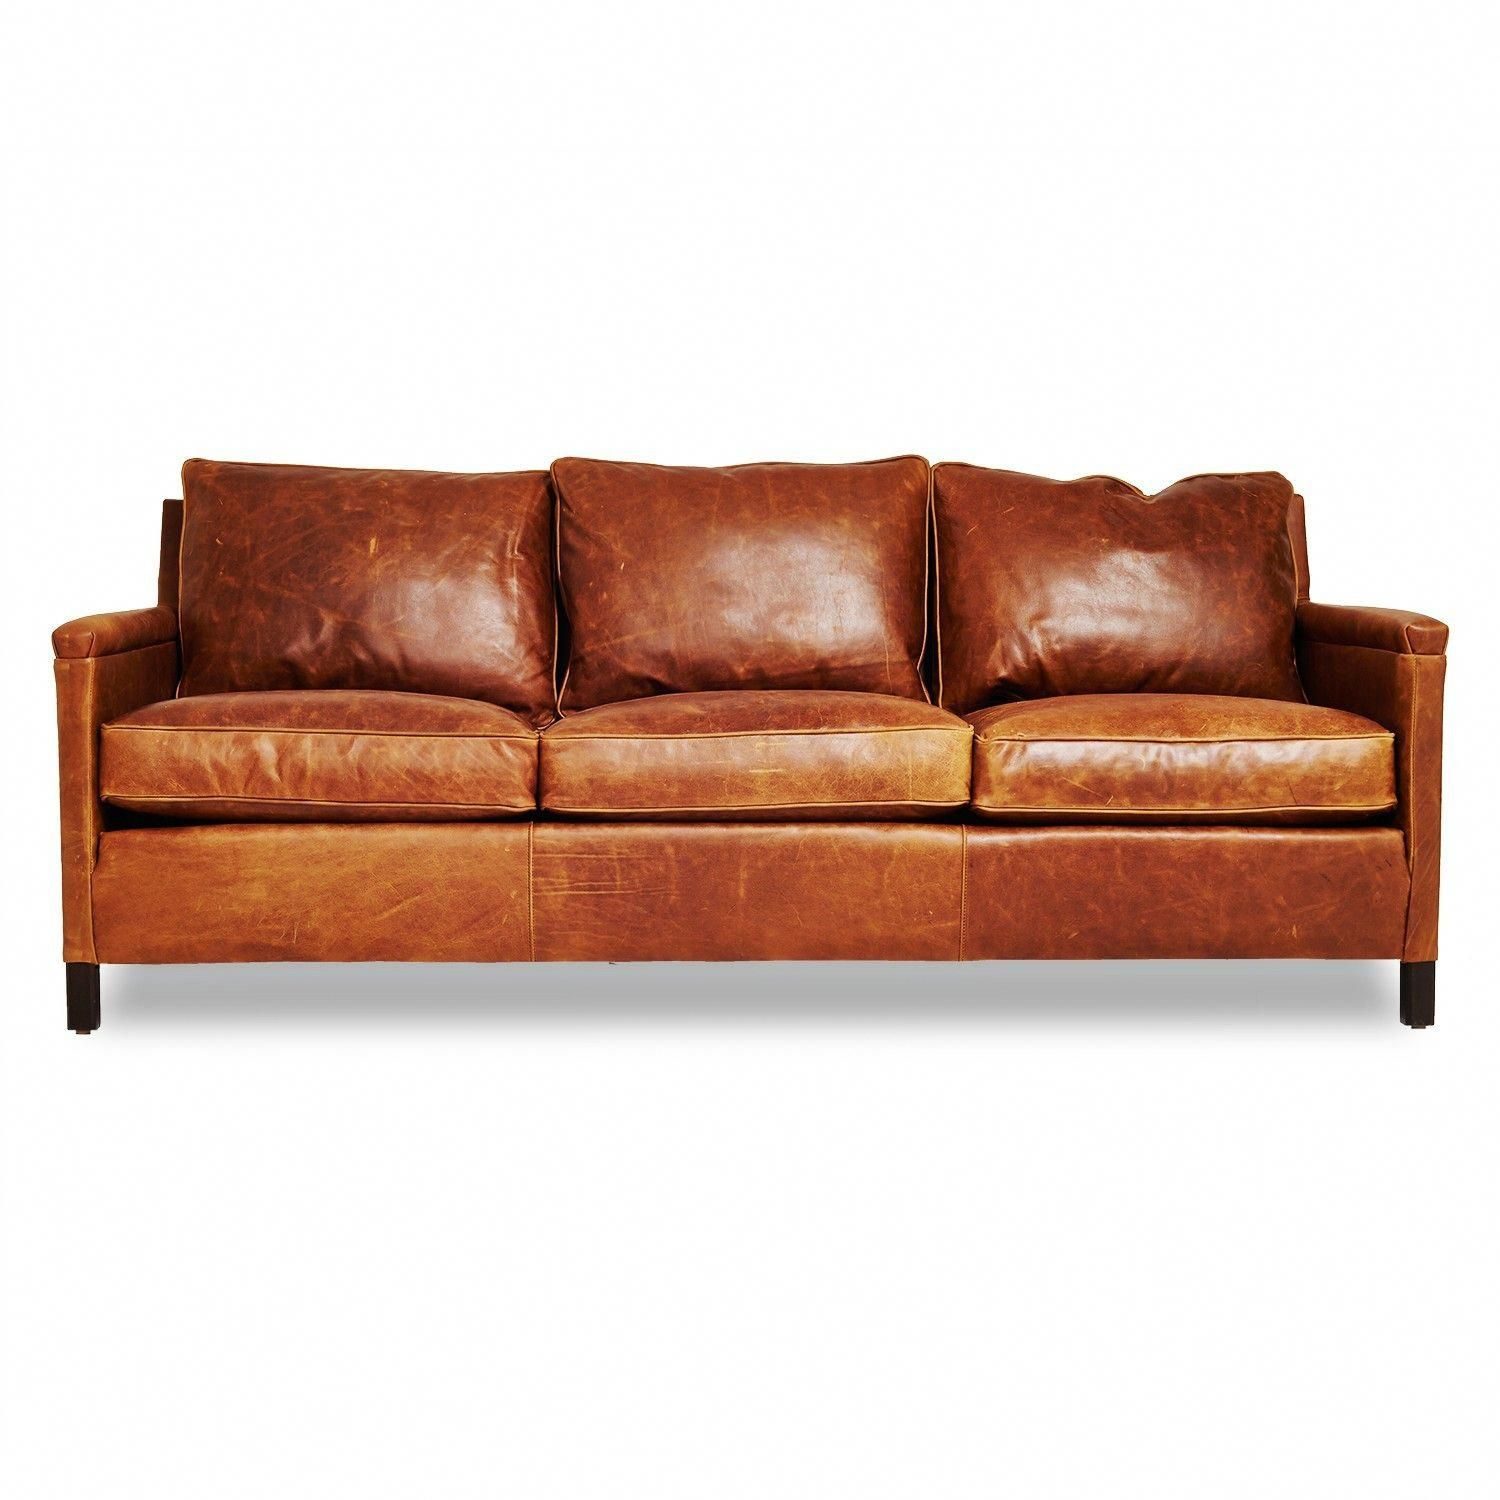 Brilliant Light Brown Leather Sofa Couch As Well As Reclining Leather Andrewgaddart Wooden Chair Designs For Living Room Andrewgaddartcom